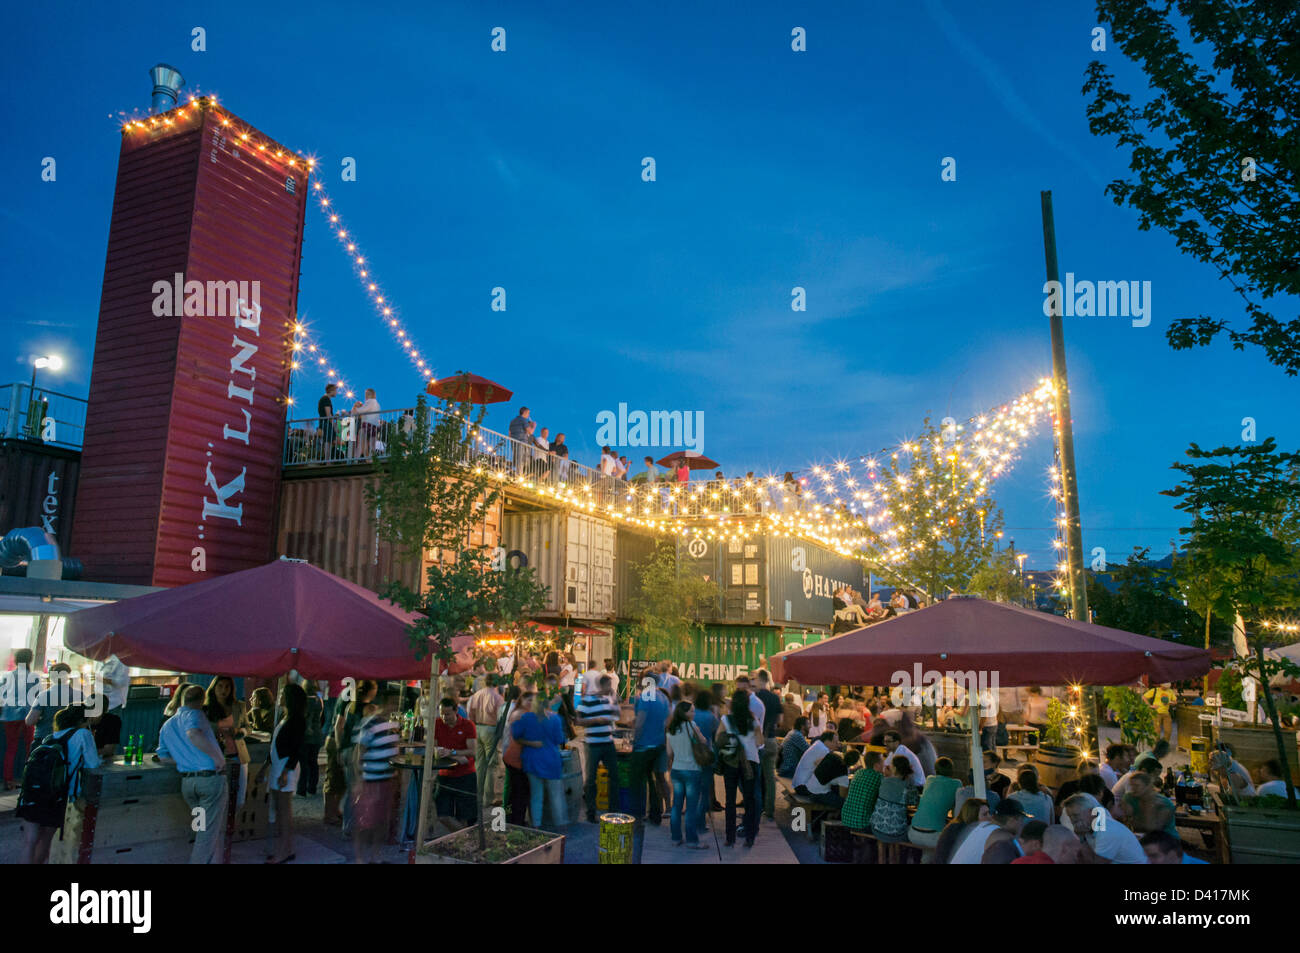 Open air Bar, Frau Gerolds Garten, Kreis 5, Zurich, Switzerland - Stock Image